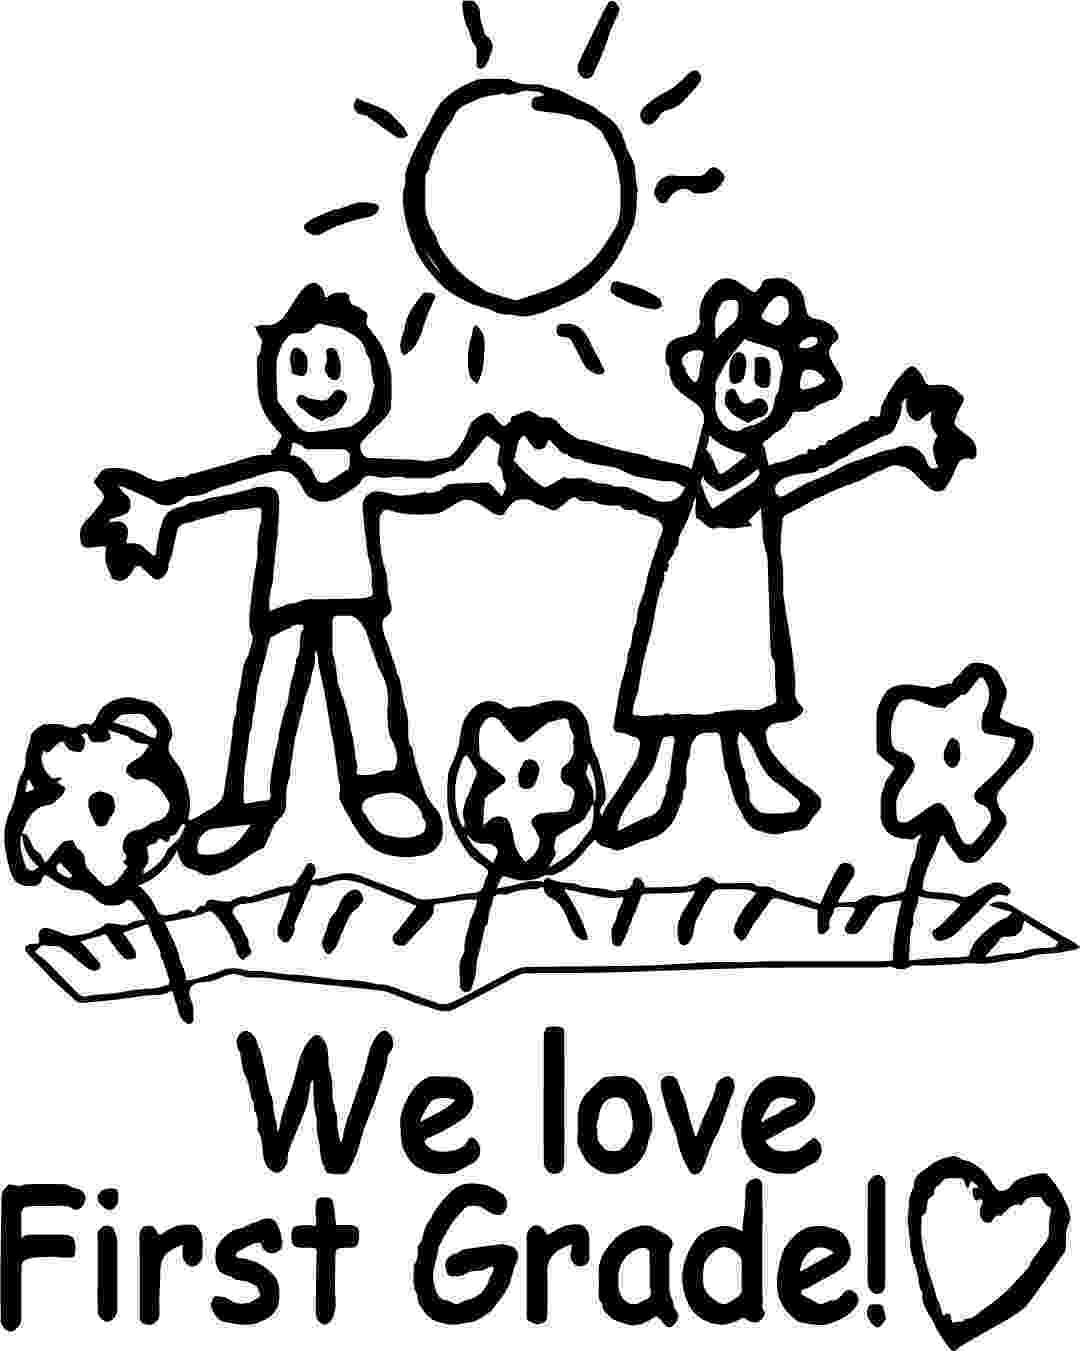 free coloring pages grade 1 free printable coloring worksheets for first grade color grade 1 pages free coloring